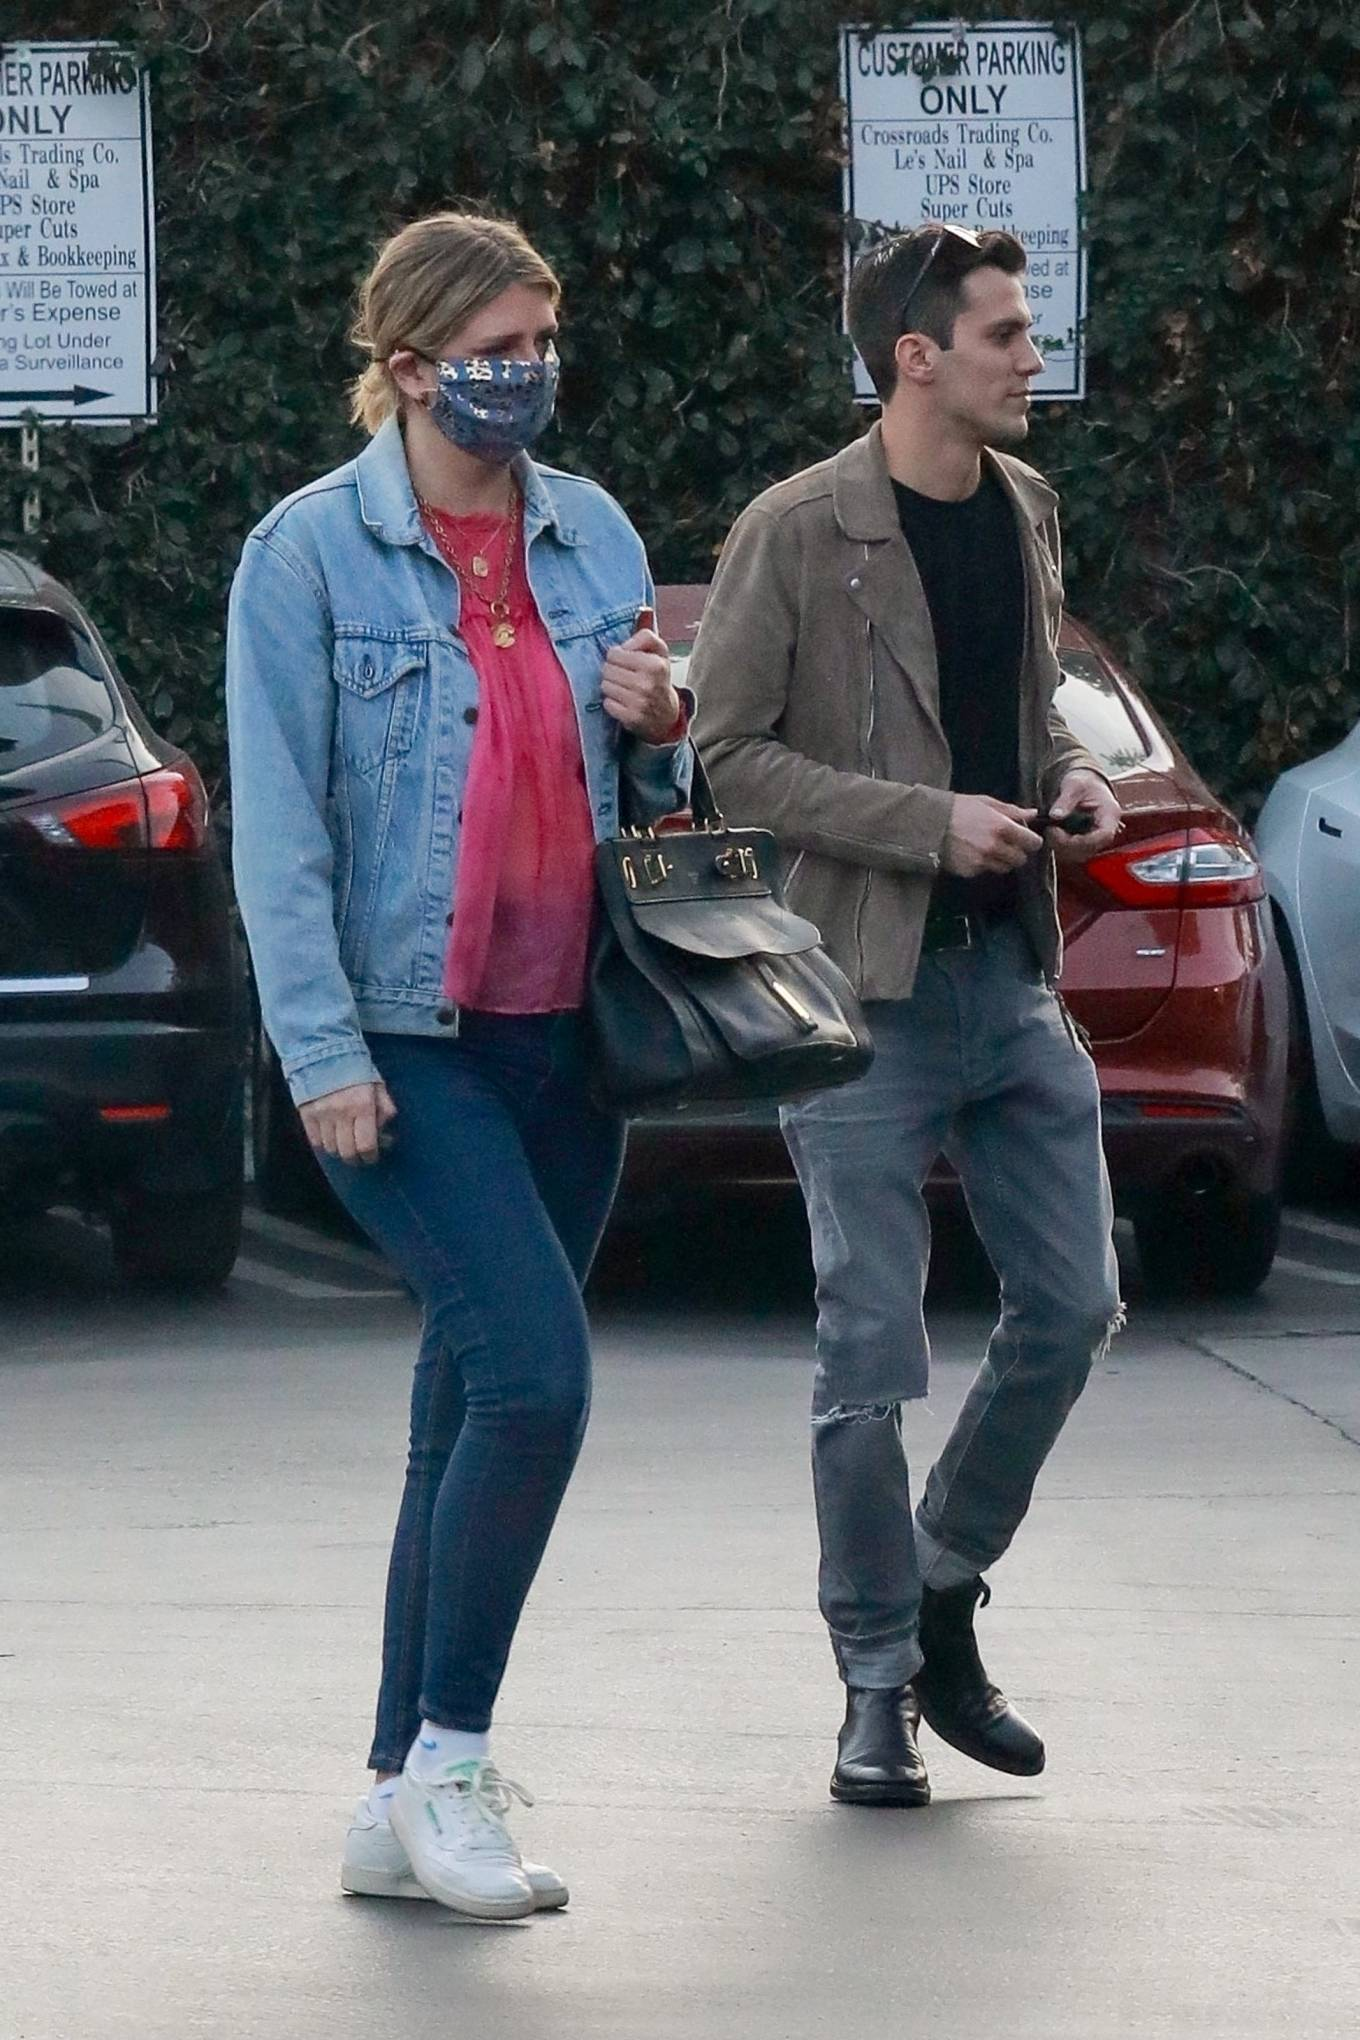 Mischa Barton 2020 : Mischa Barton – And her boyfriend Gian Marco Flamini at Tomato Pie Pizza Joint in Los Angeles -06